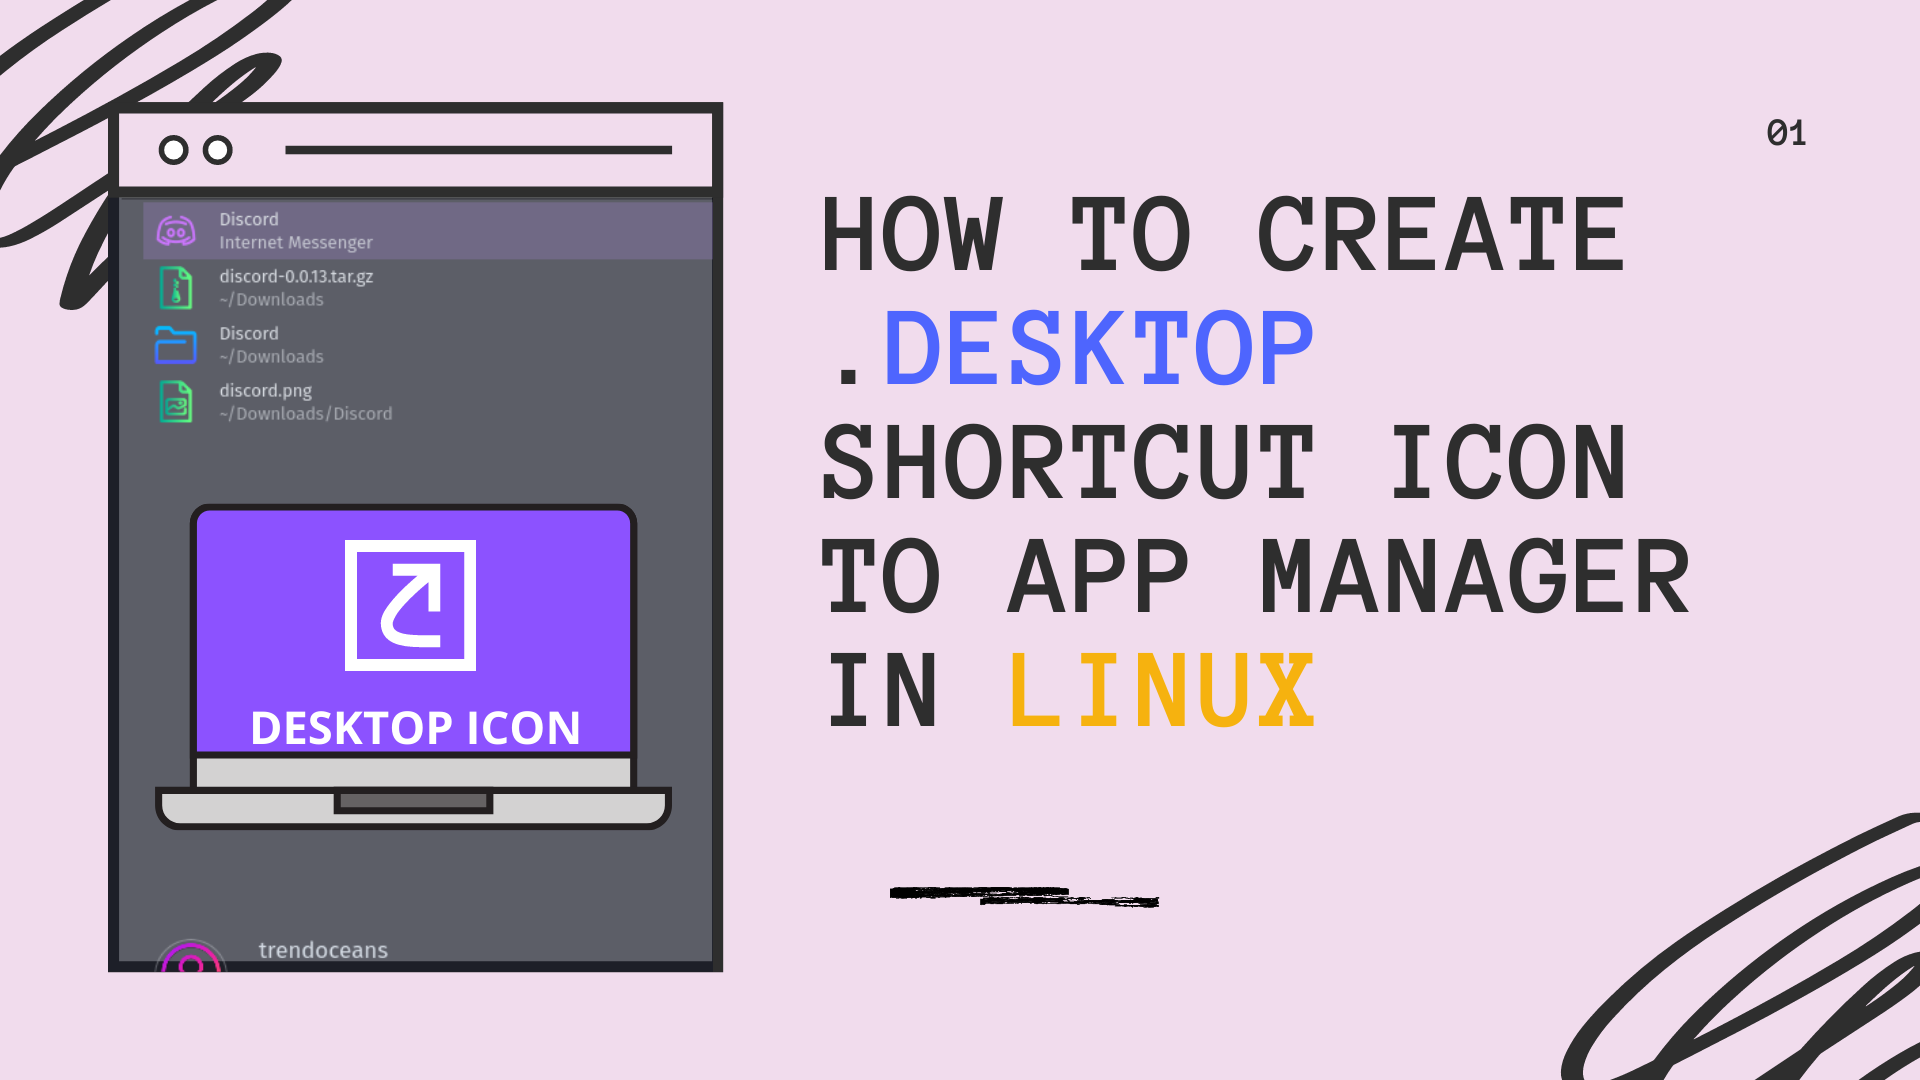 How to create .desktop shortcut Icon to App Manager in Linux